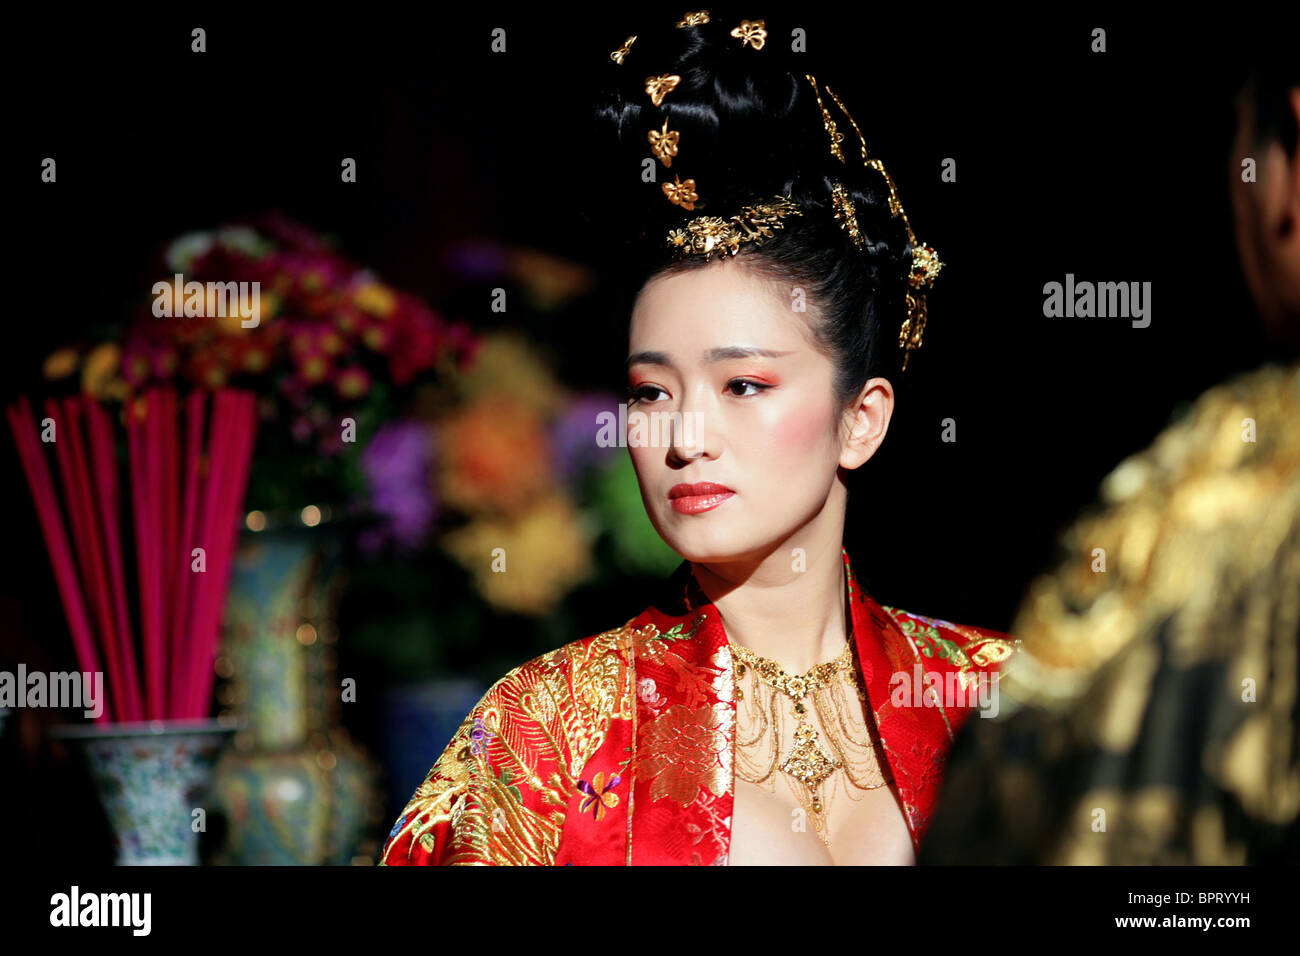 GONG LI CURSE OF THE GOLDEN FLOWER MAN CHENG JIN DAI HUANG JIN JIA Stock Pho